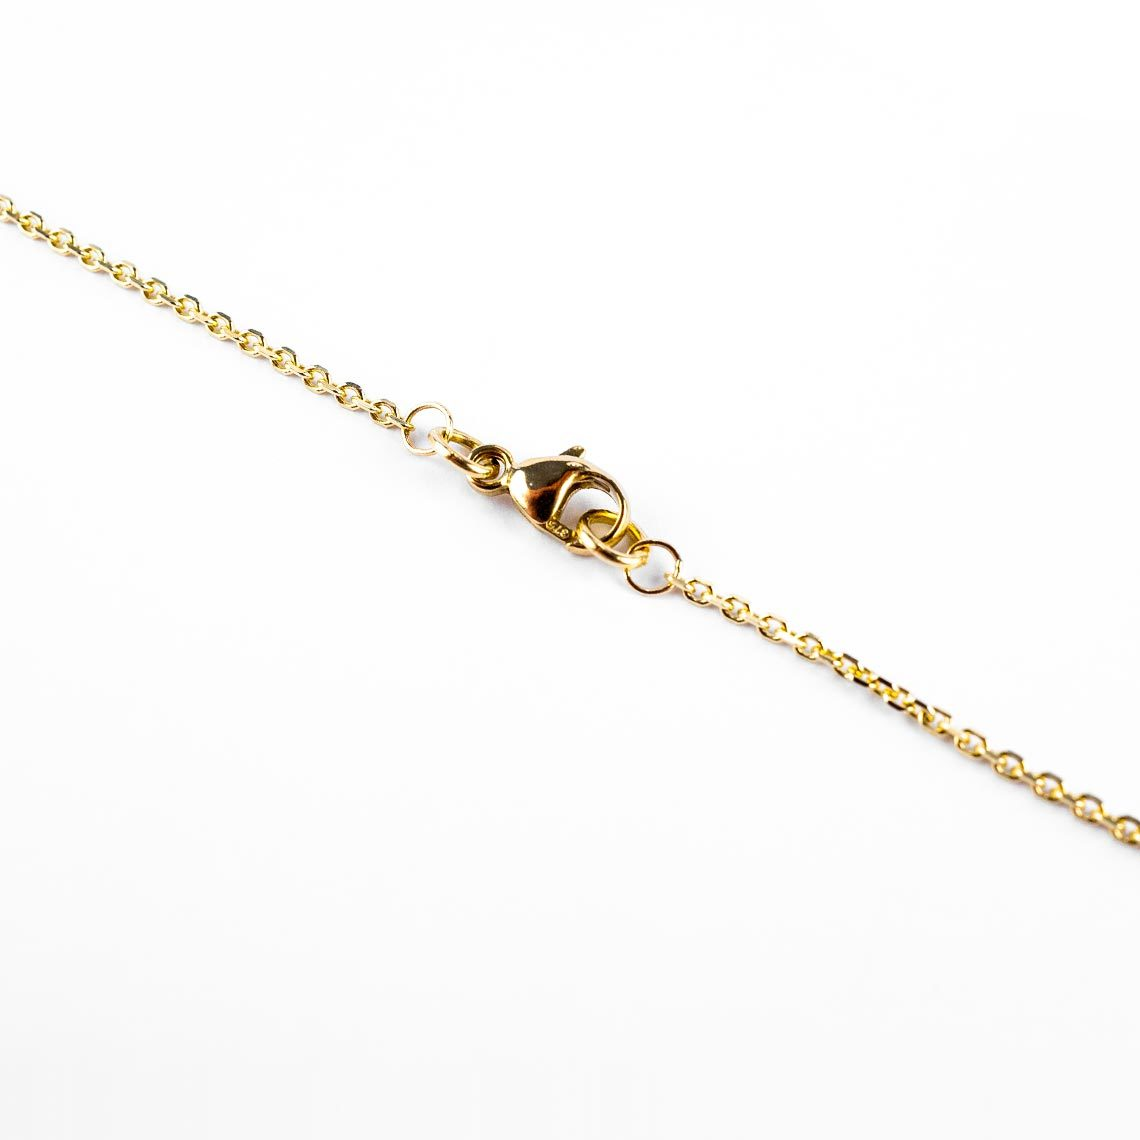 Gold trace chain